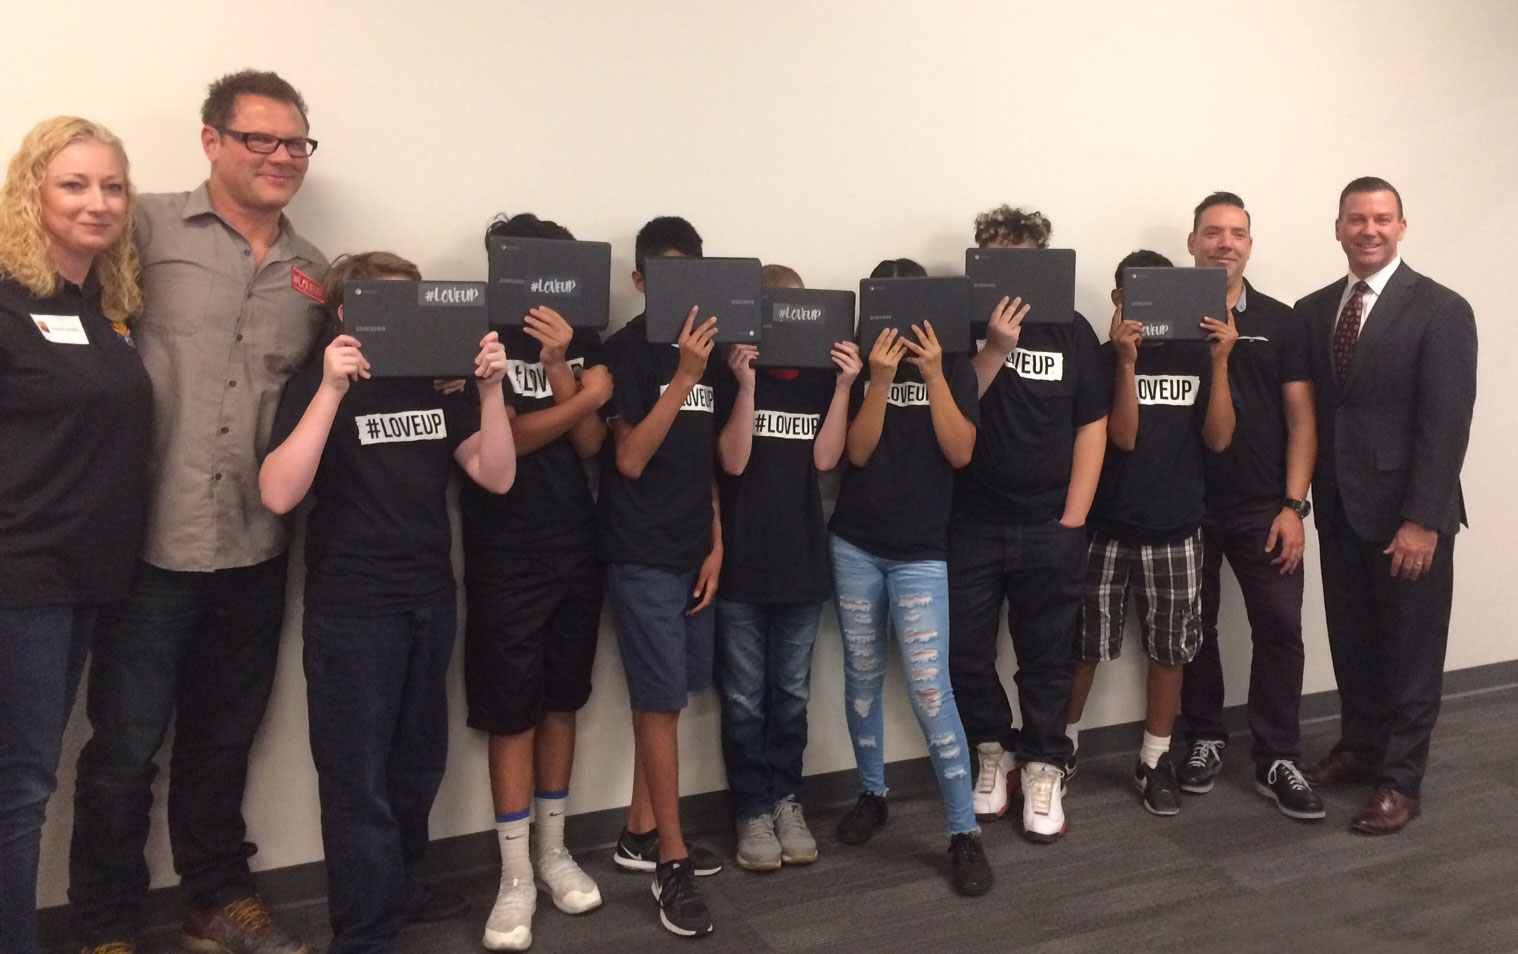 Pictured from left: DCS Deputy Director Shalom Jacobs; #LoveUp Foundation founder, Johnjay Van Es; foster youth posing with their new laptops; #LoveUp Foundation co-founder, Rich Berra; and DCS Director Greg McKay.